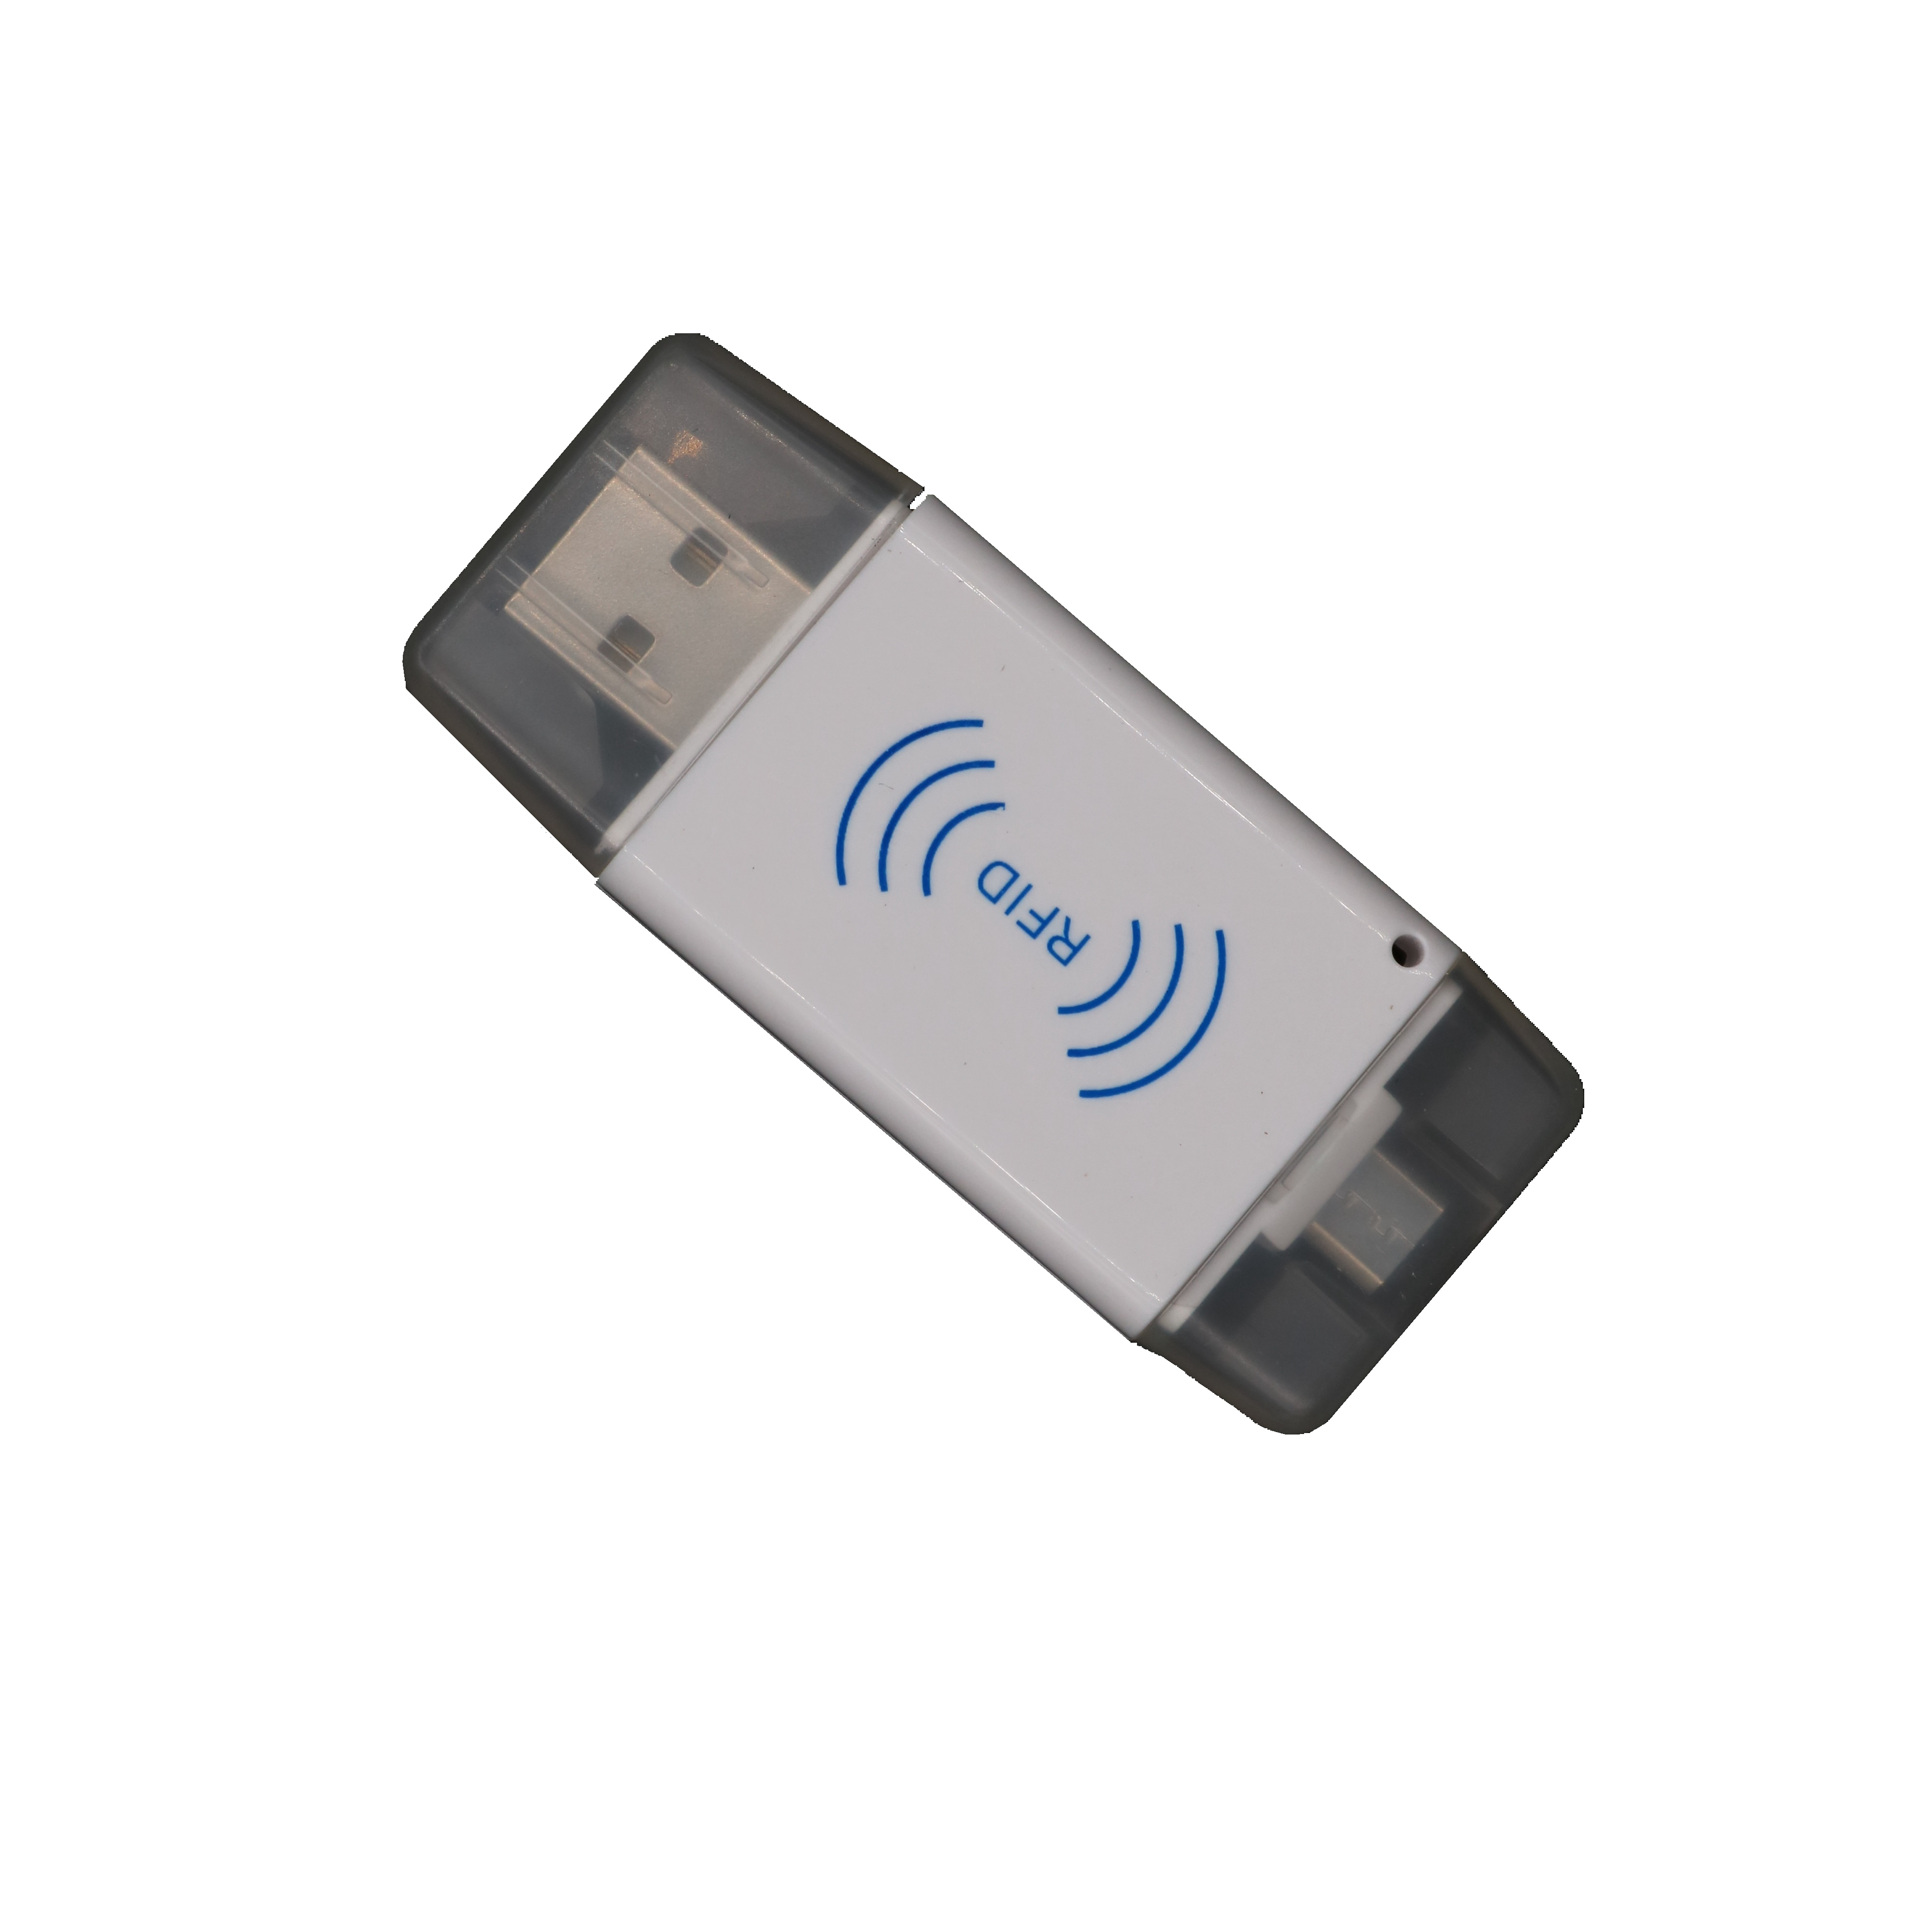 USB 125Khz RFID EM Card Reader Mirco Usb Interface For Android